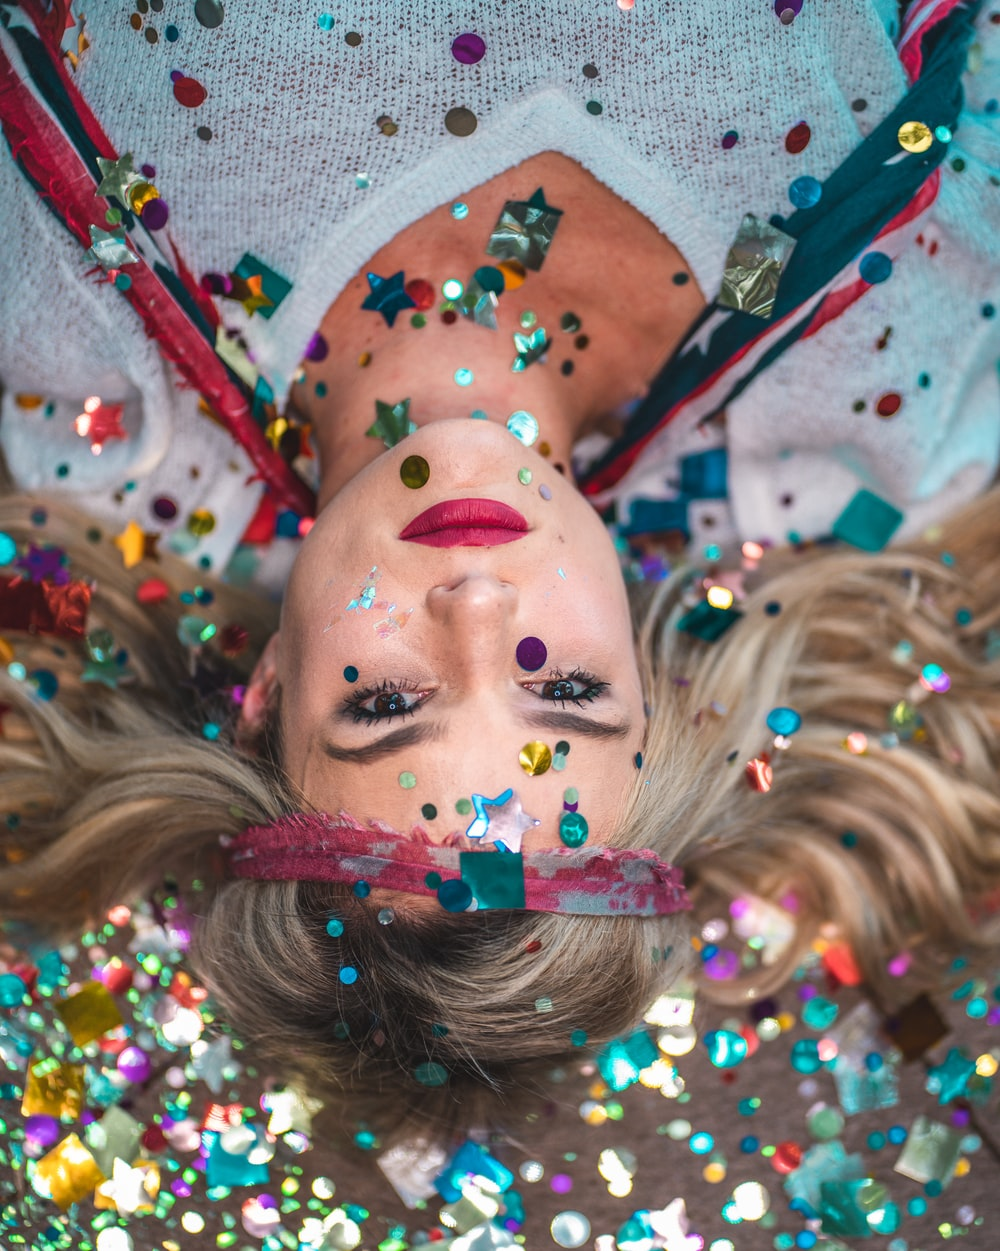 woman in white top covered with confettis while on floor